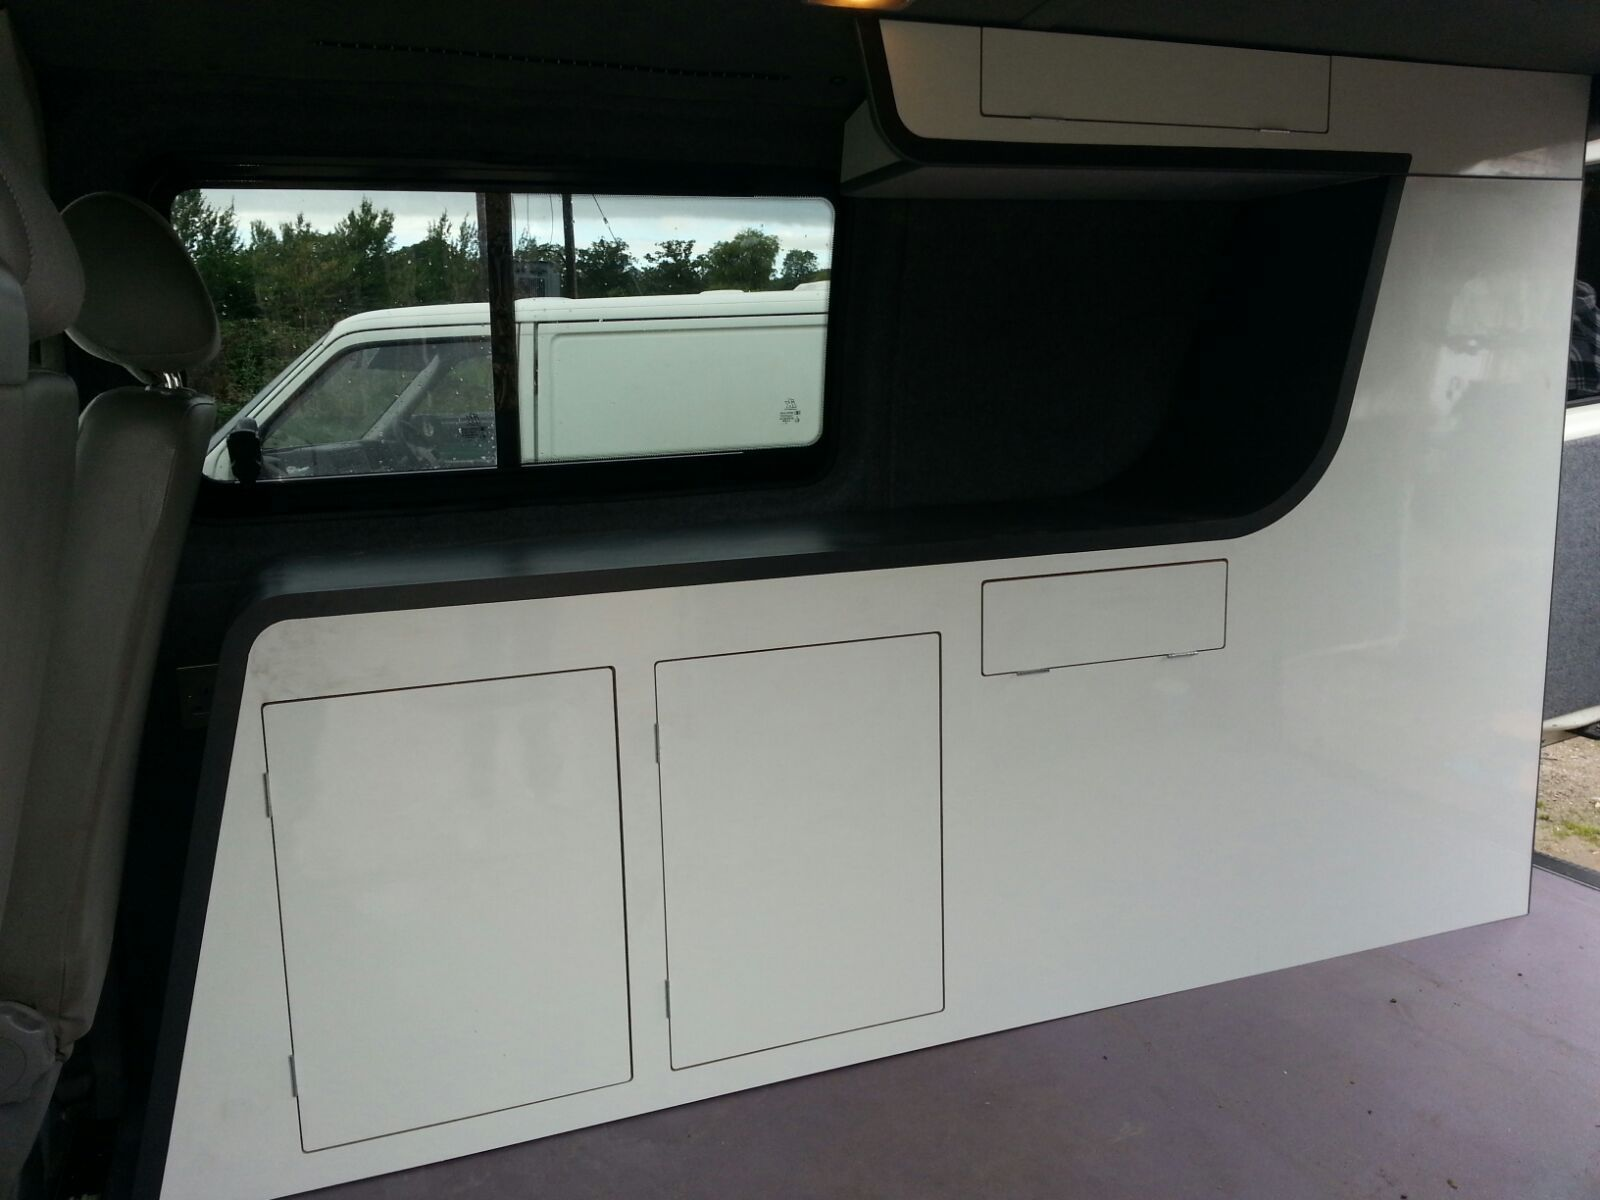 Vw t5 conversion lwb transporter t4 camper van conversion for Vw t4 interior designs